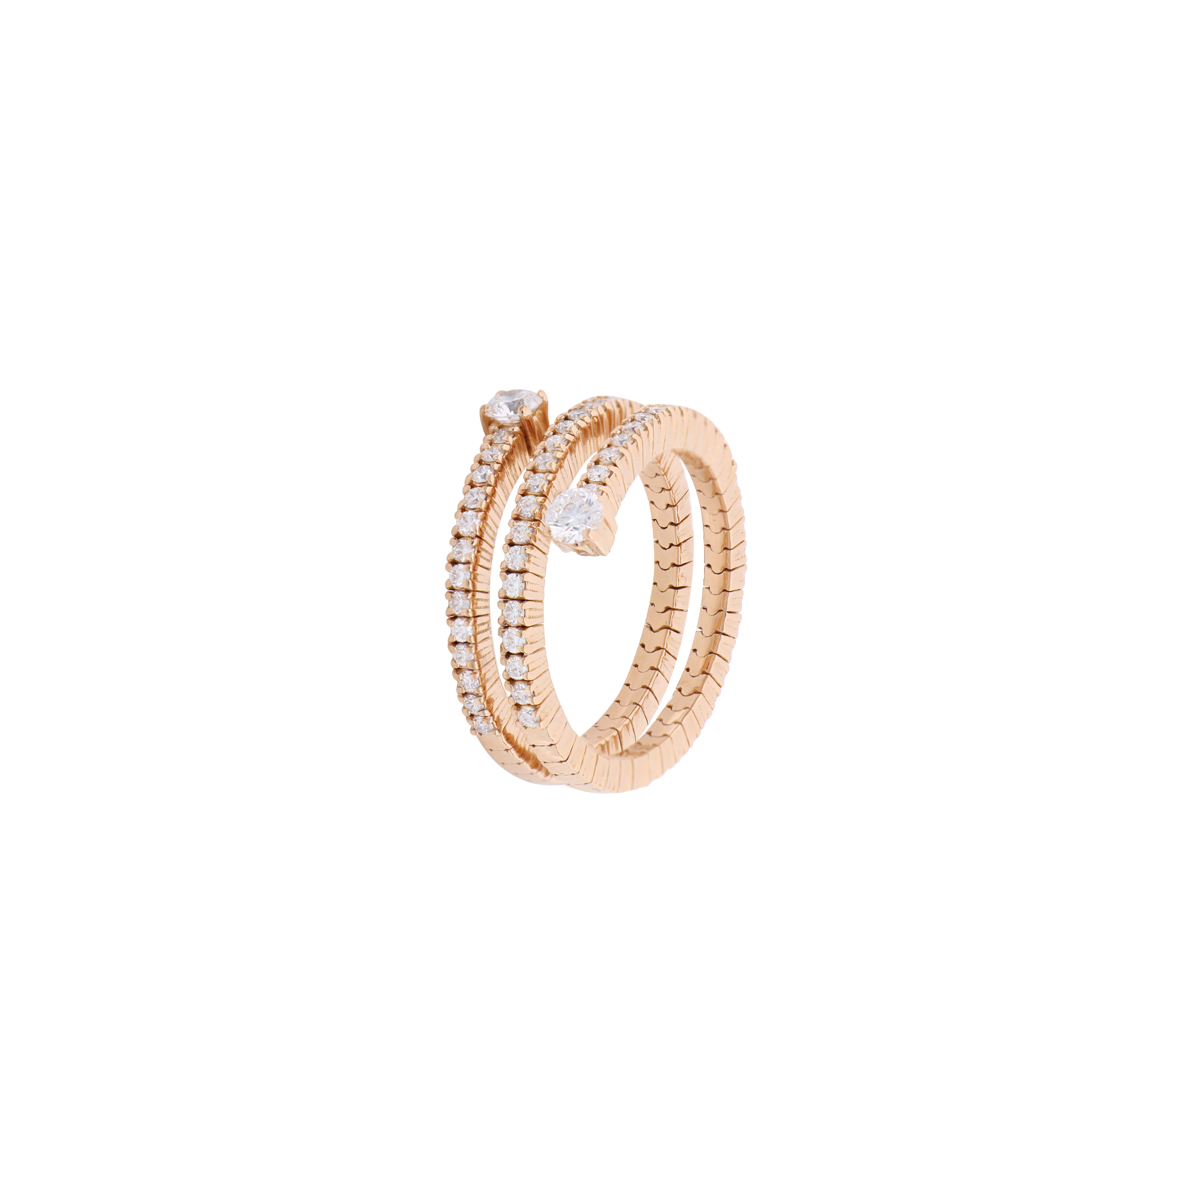 Red Gold and Diamond Spiral Eternity Ring